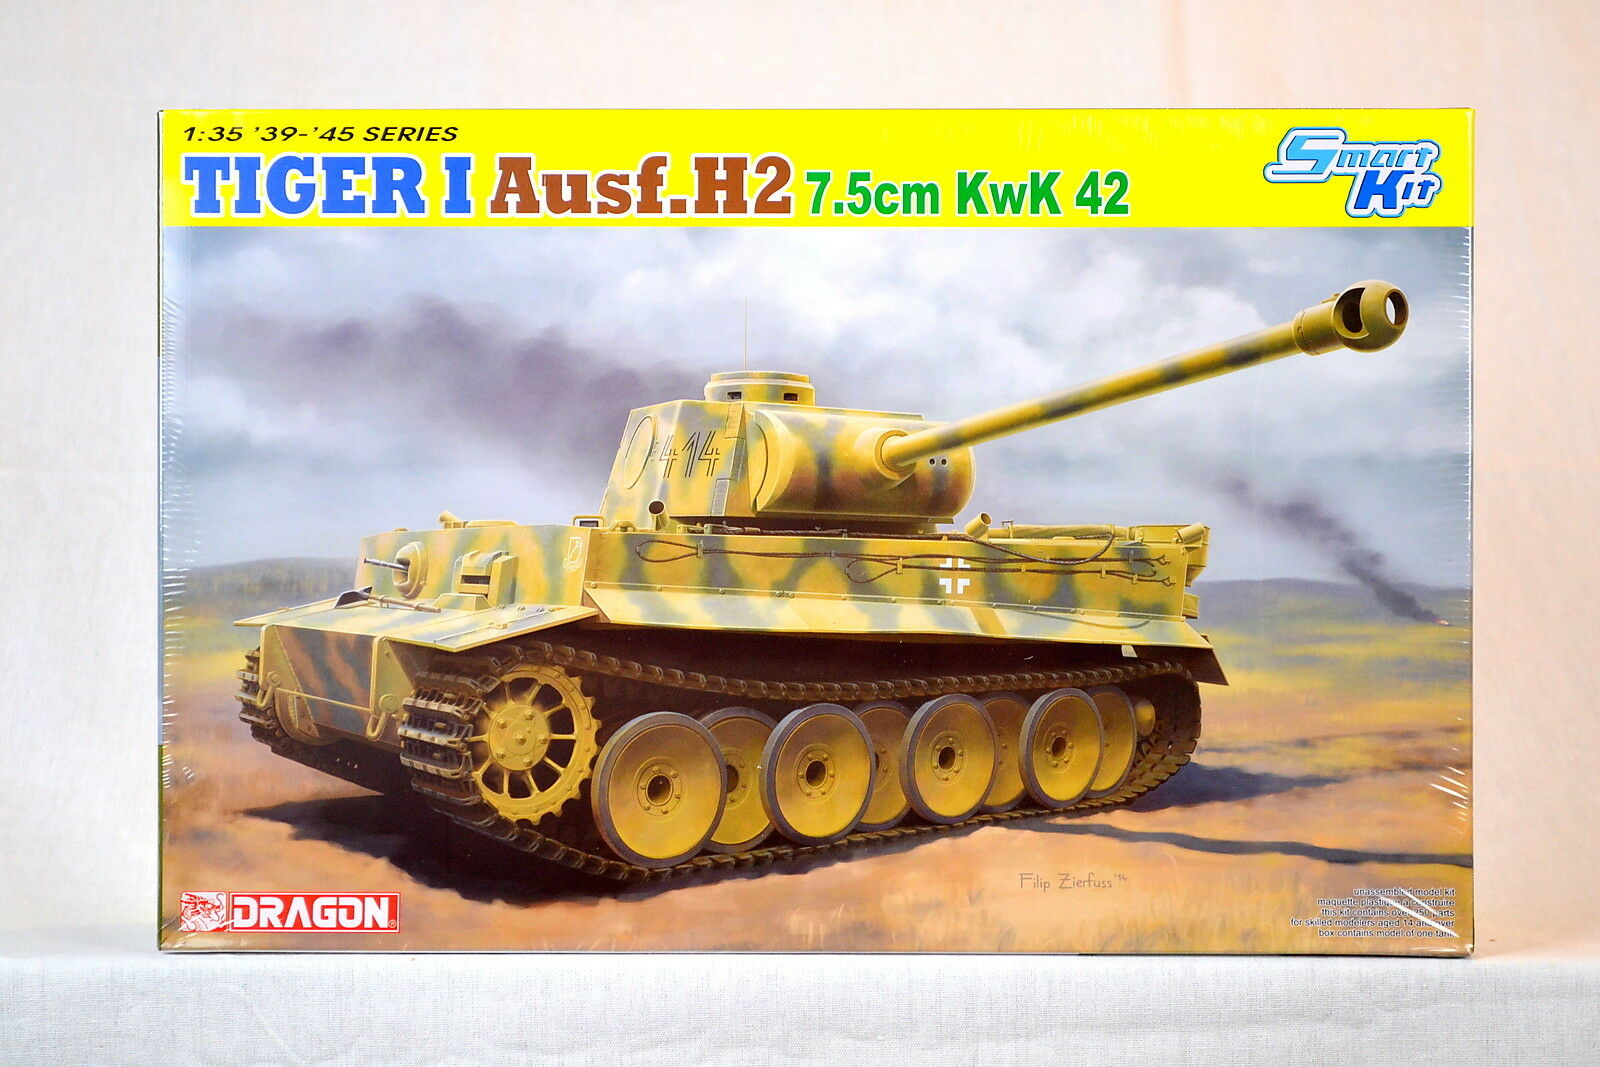 Dragon 6683 1 35 Tiger I Ausf. H2